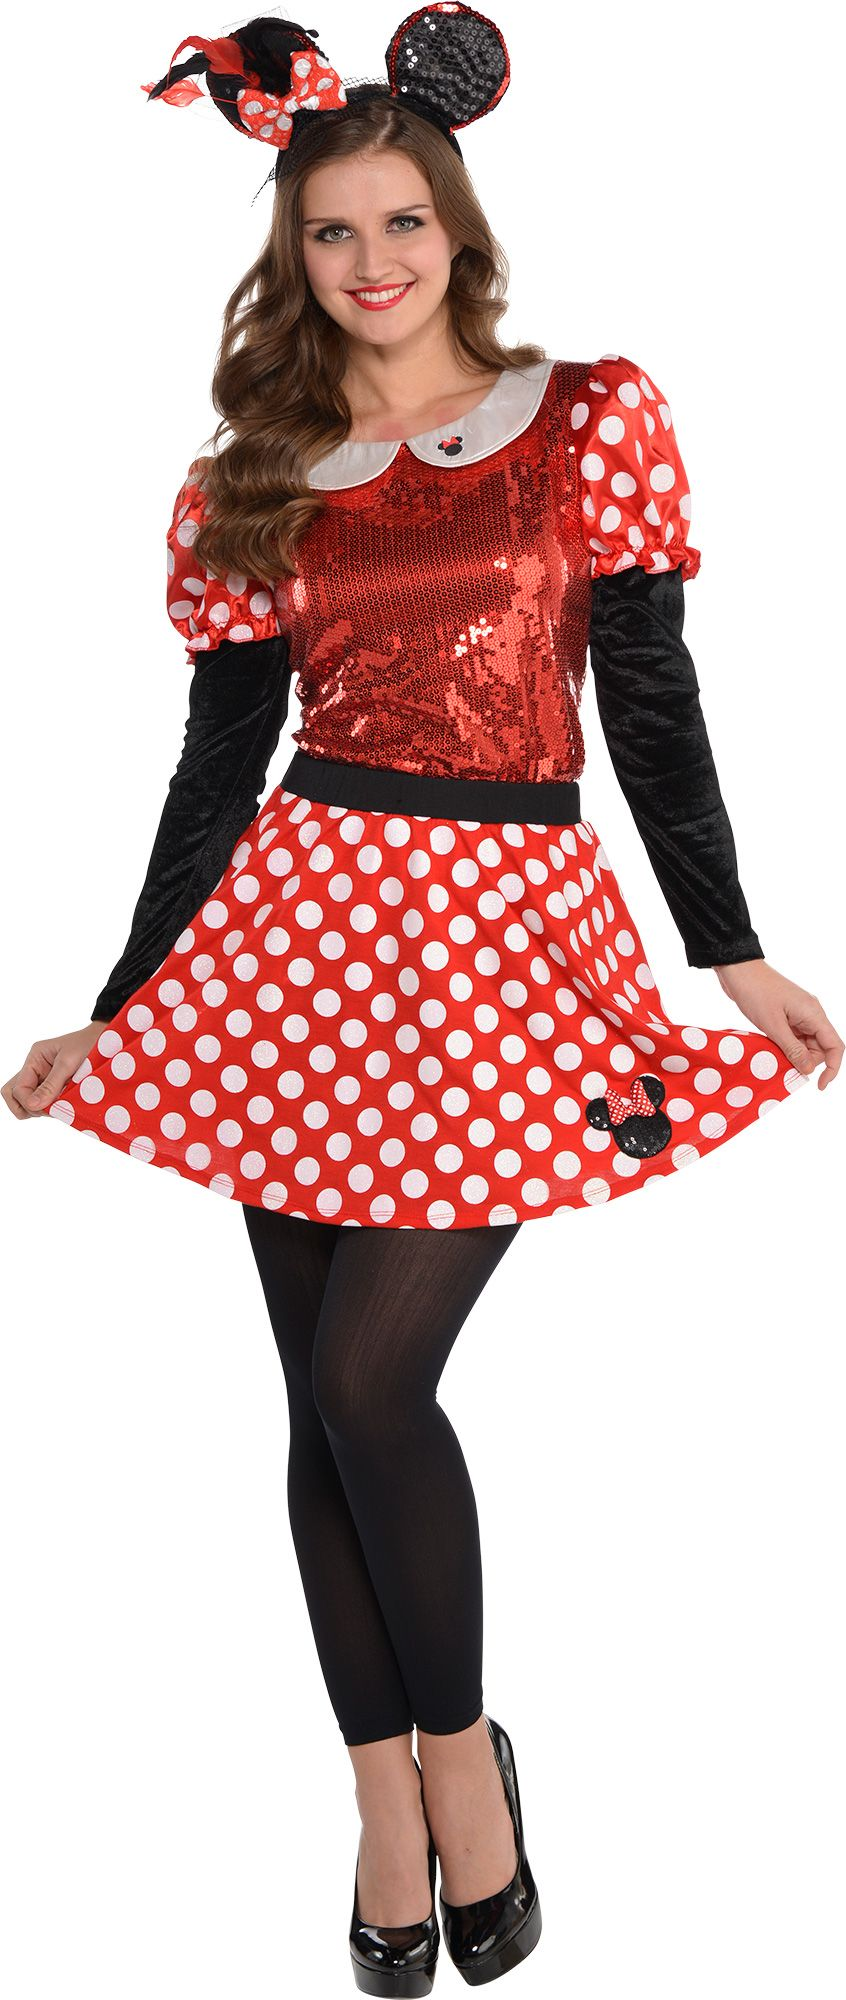 create your own women 39 s minnie mouse costume accessories party city. Black Bedroom Furniture Sets. Home Design Ideas